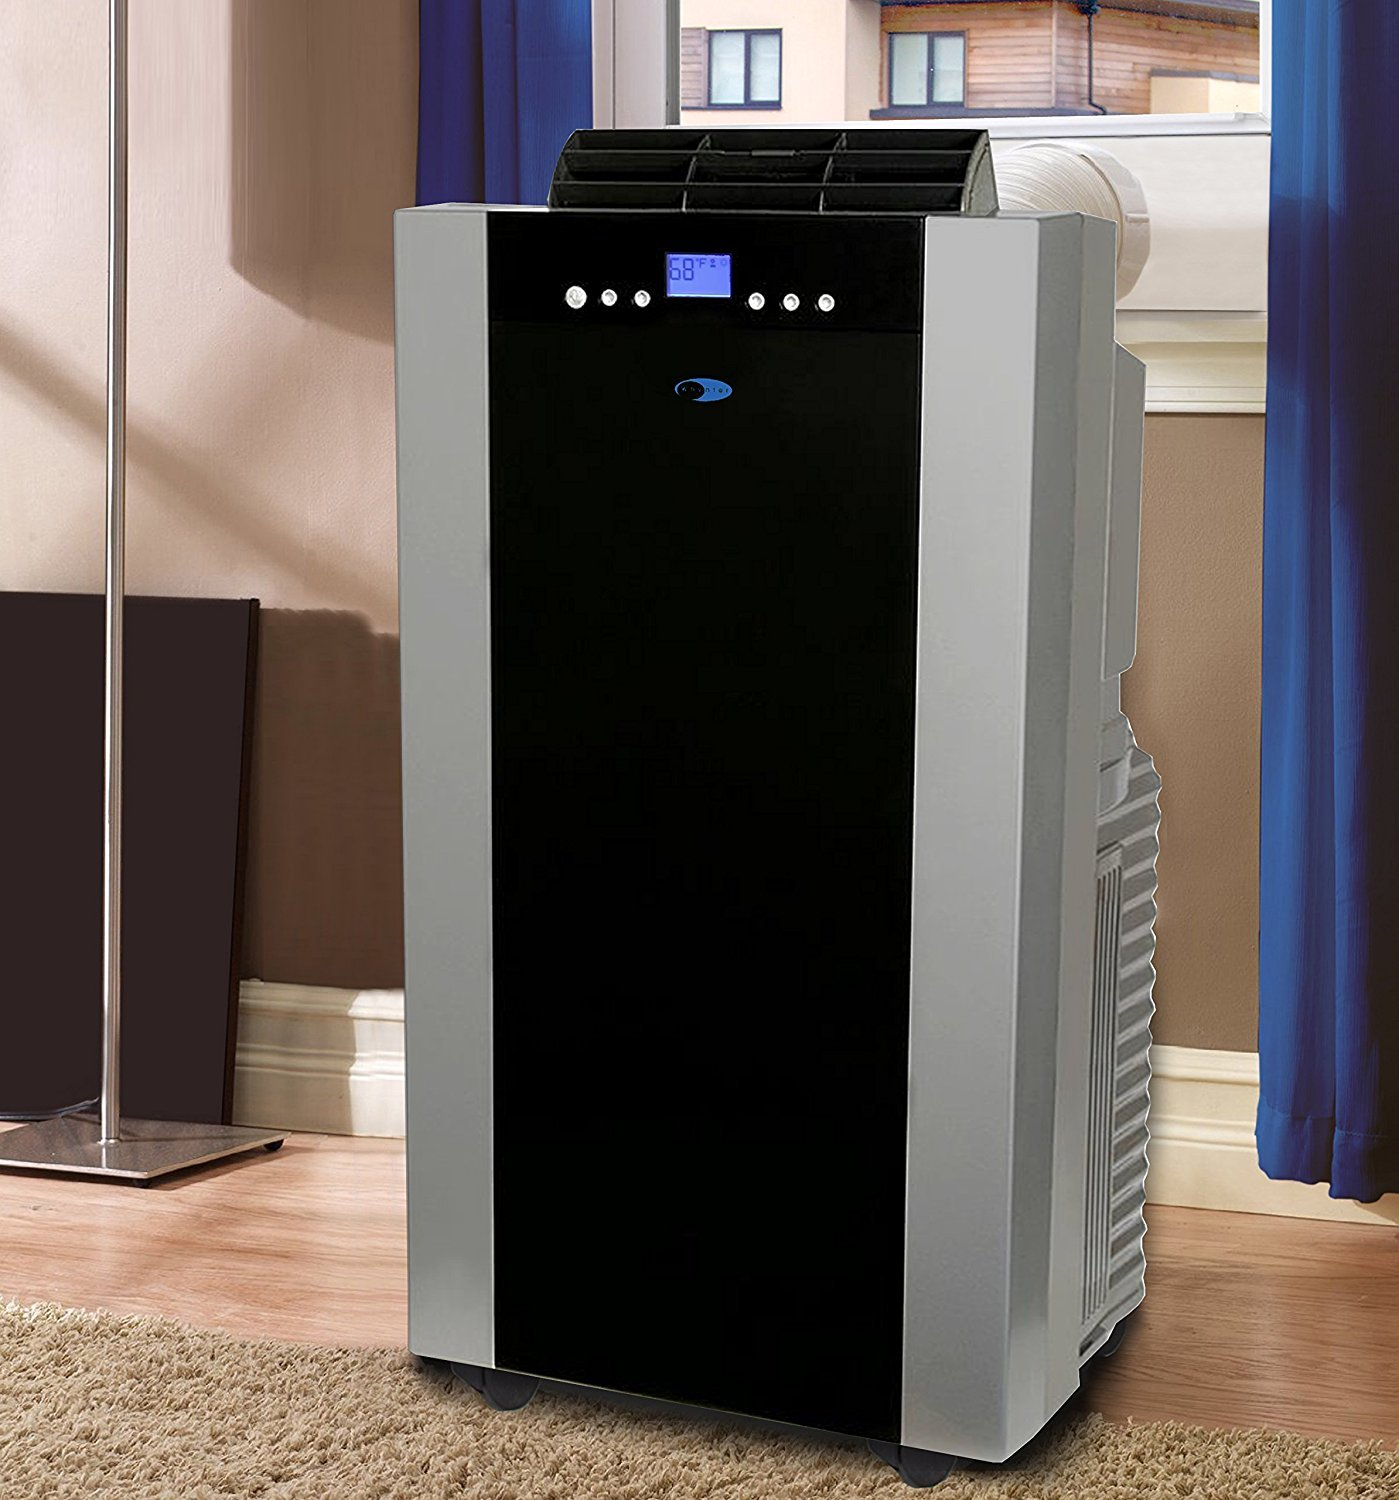 1. Whynter ARC-14S Portable ac - Best Small Portable Air Conditioner